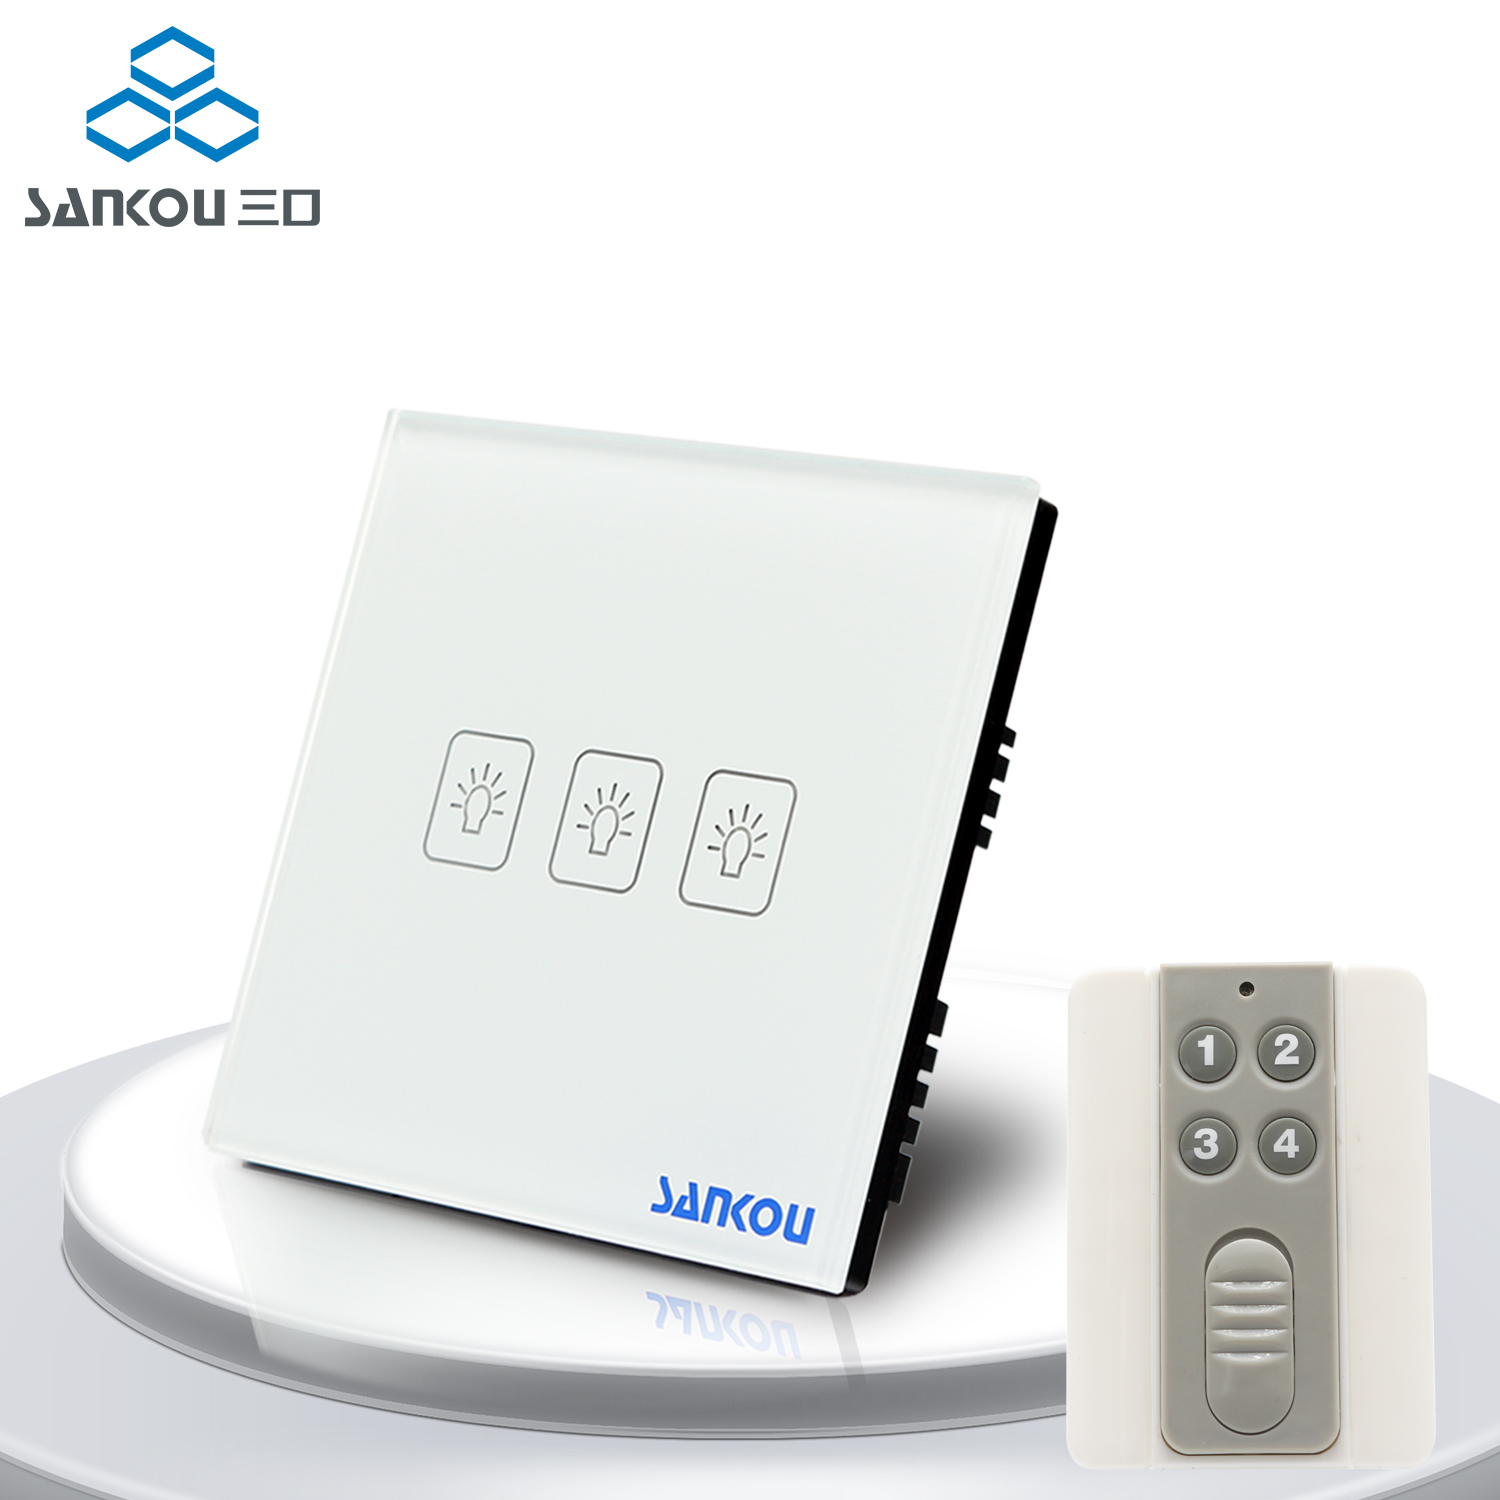 UK Standard SANKOU Remote Wall Switches with Controller 3Gang1Way 50HZ/60HZ Remote Light Switch 220V with LED Indicator 3gang1way uk wall light switches ac110v 250v touch remote switch